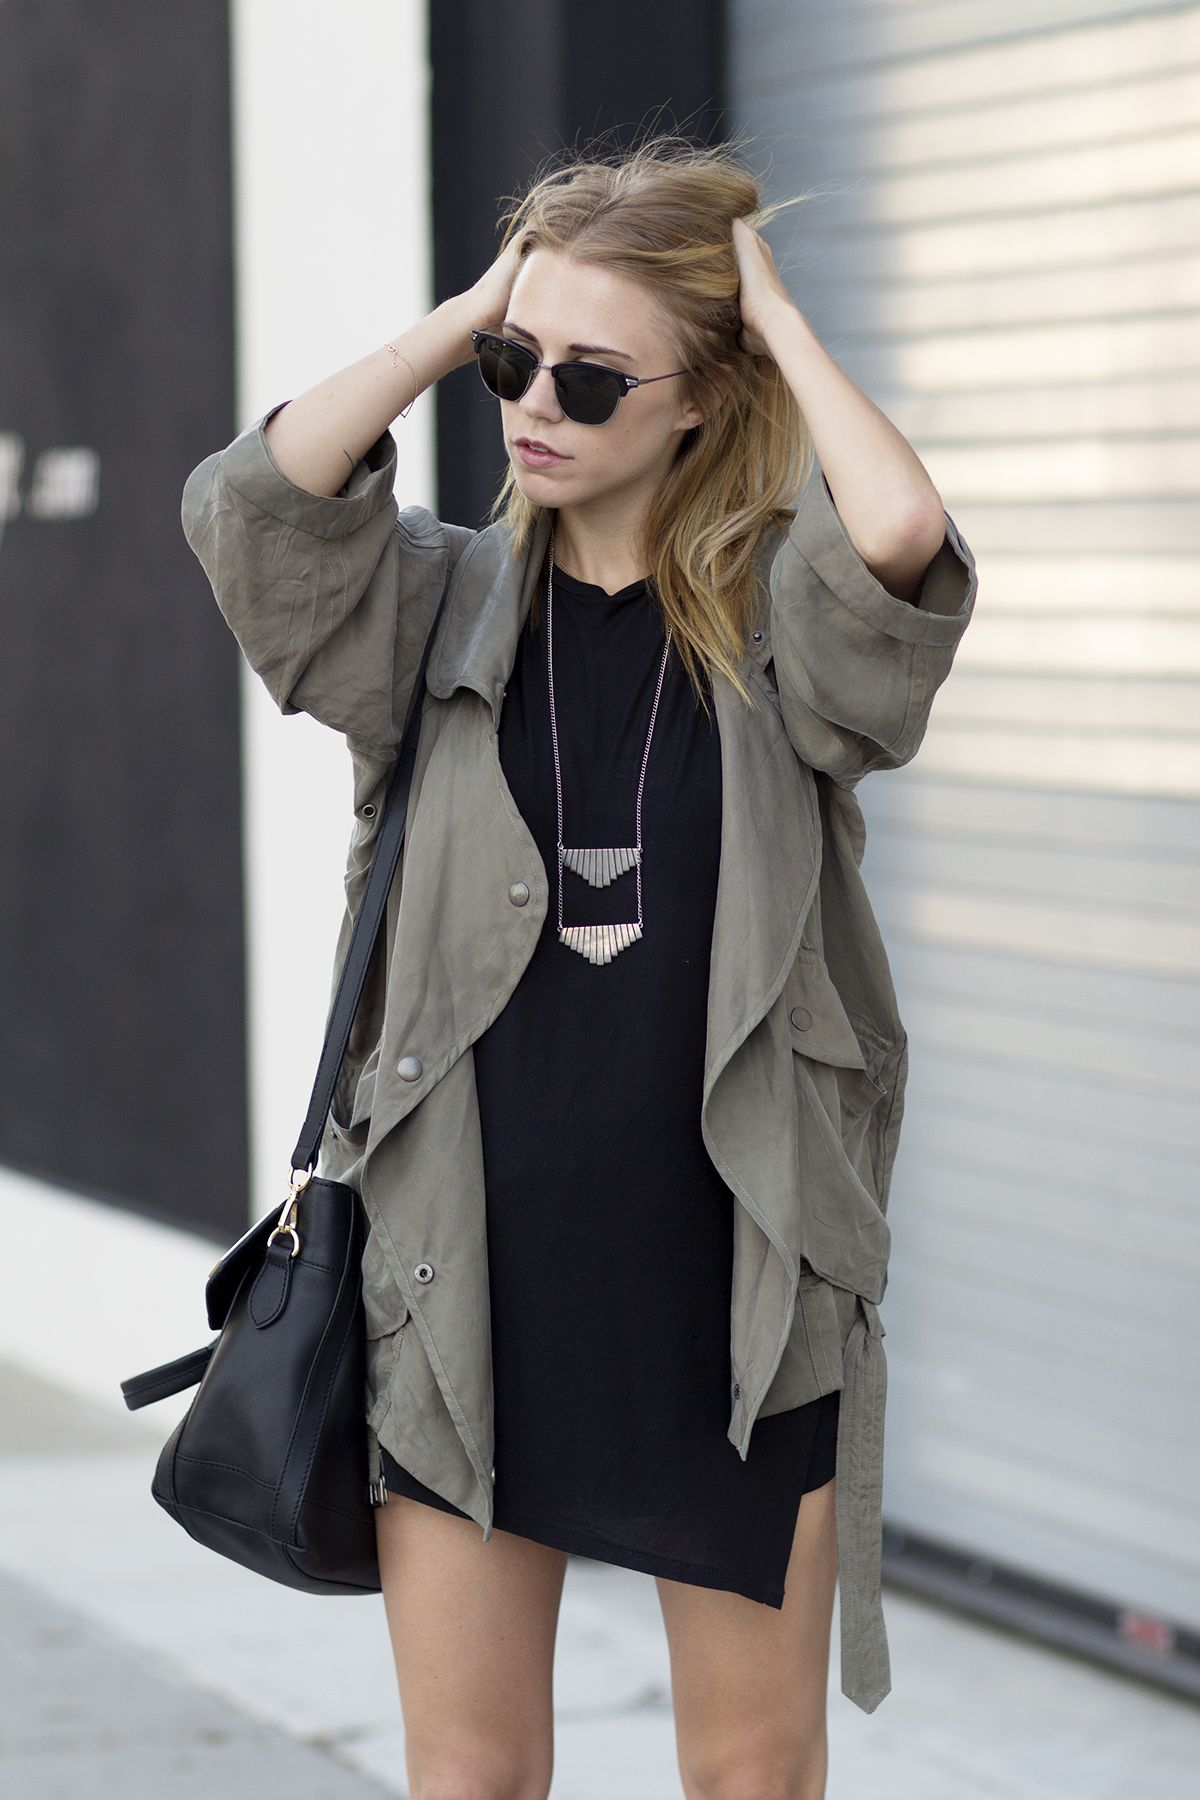 Pin by shopgab on style gals pinterest army street styles and